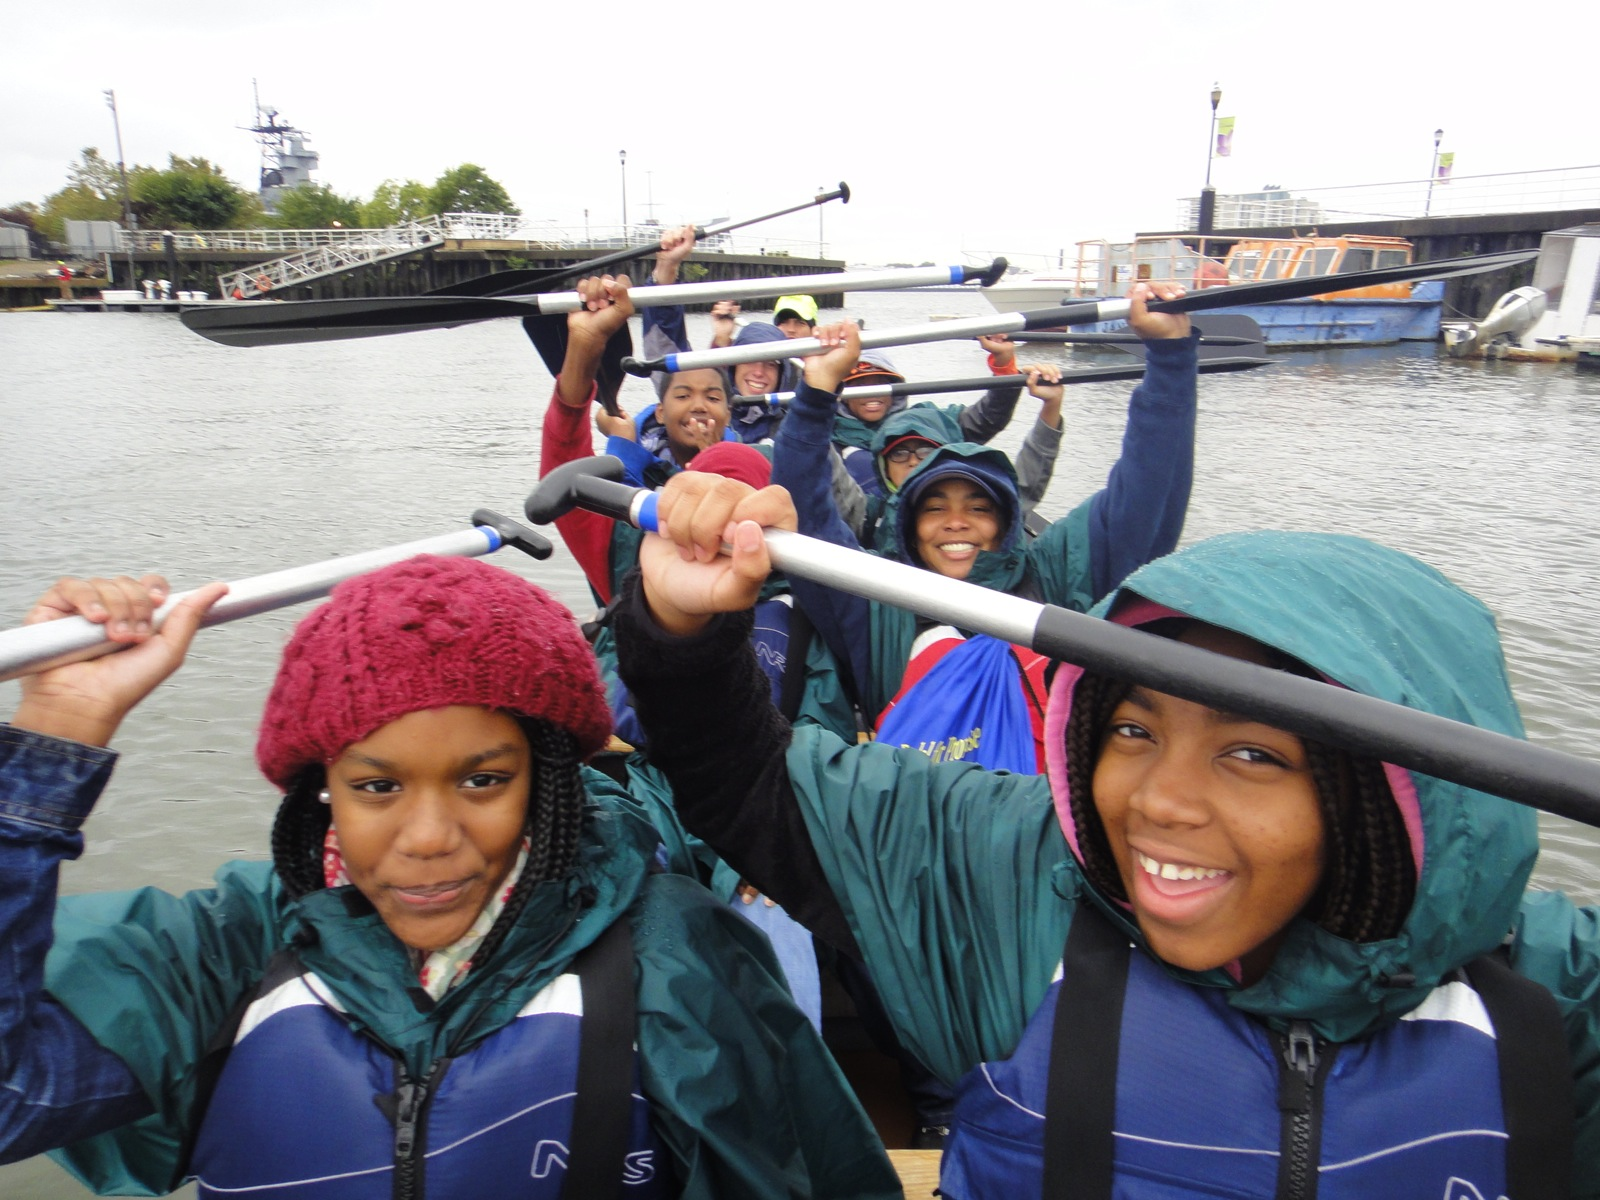 Participants hold their paddles above their heads in the canoe on a rainy day on the Delaware river